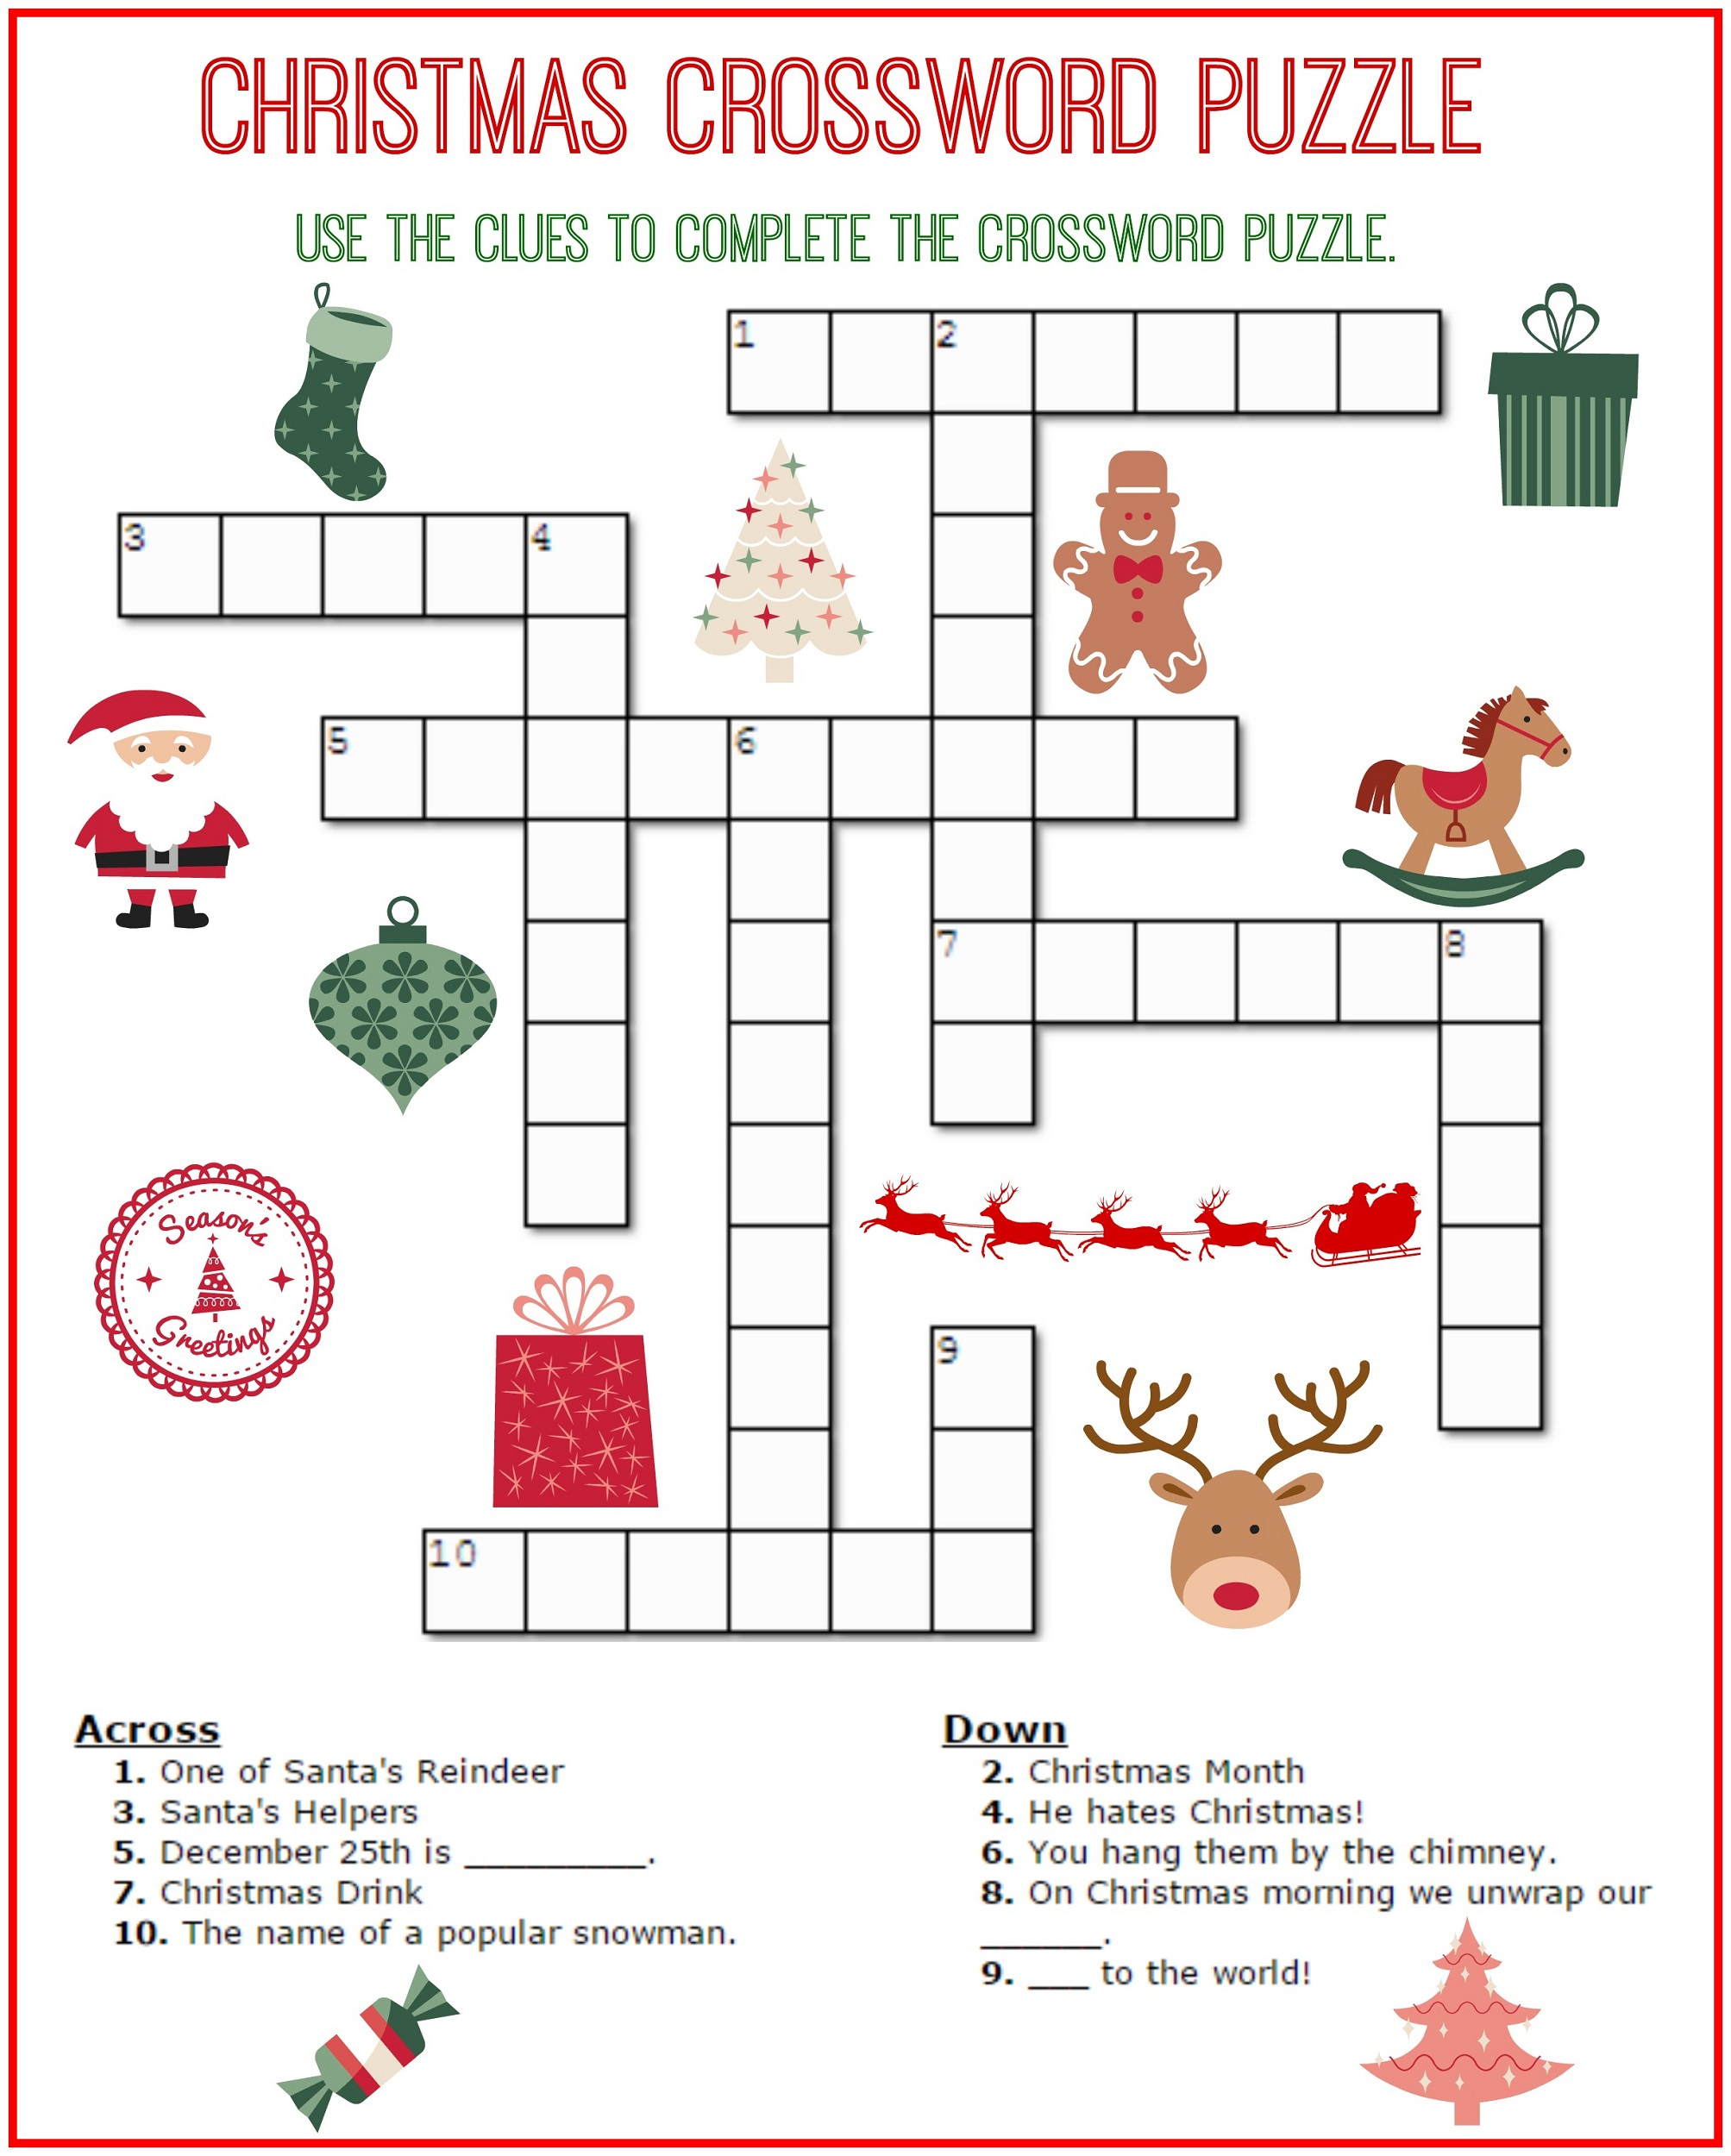 Crossword Puzzle Kids Printable 2017 | Kiddo Shelter - Free Easy - Printable Crossword Puzzles For Preschoolers